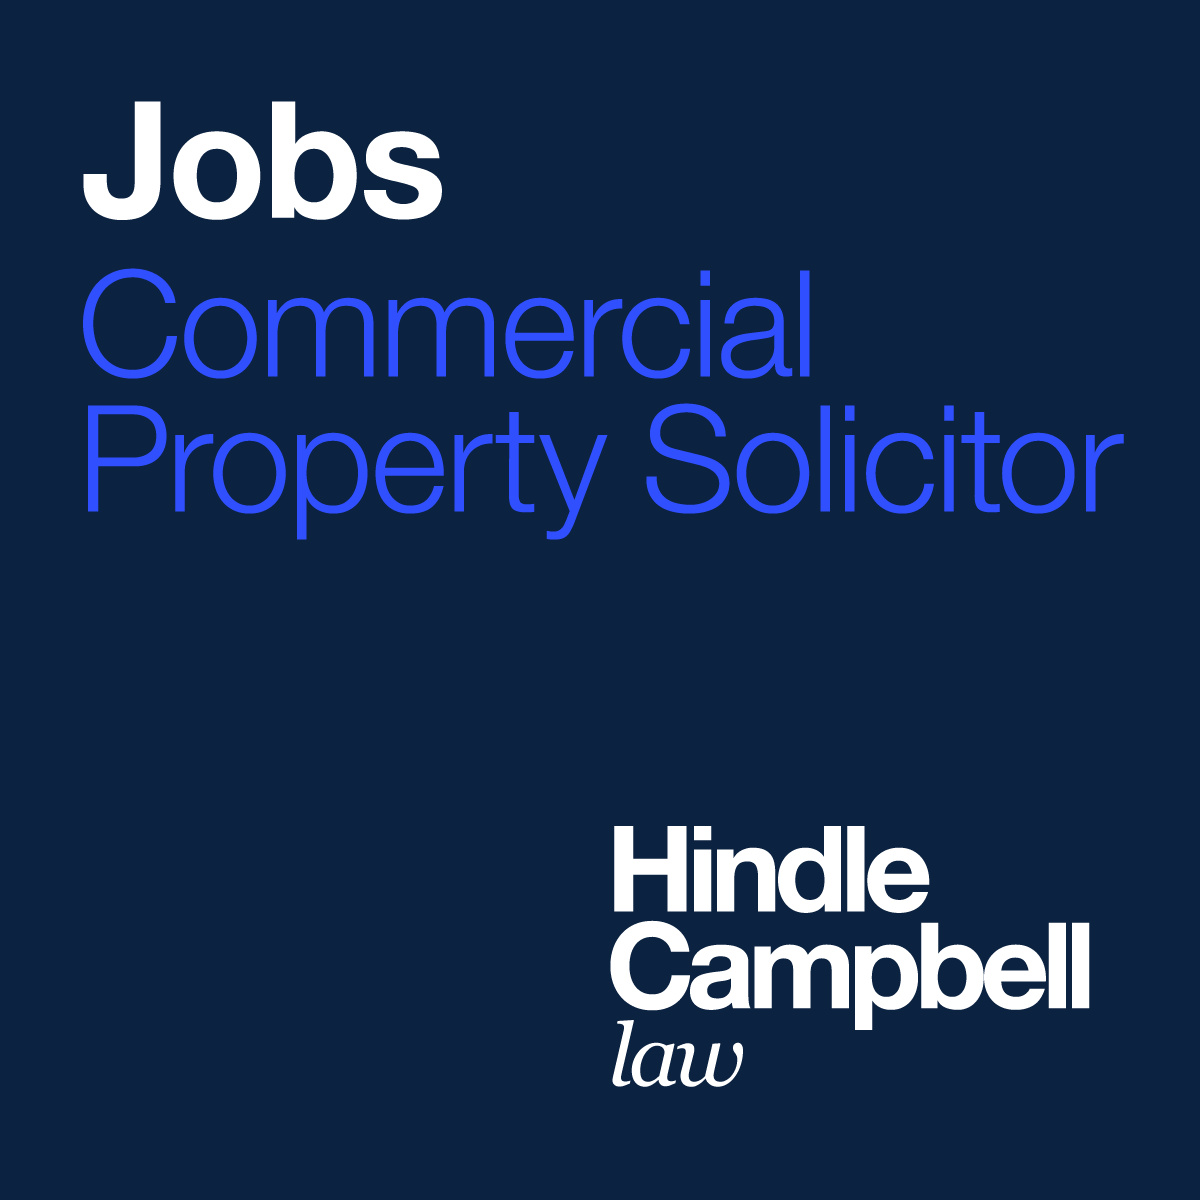 Commercial Property Solicitor Jobs Newcastle - Hindle Campbell Law